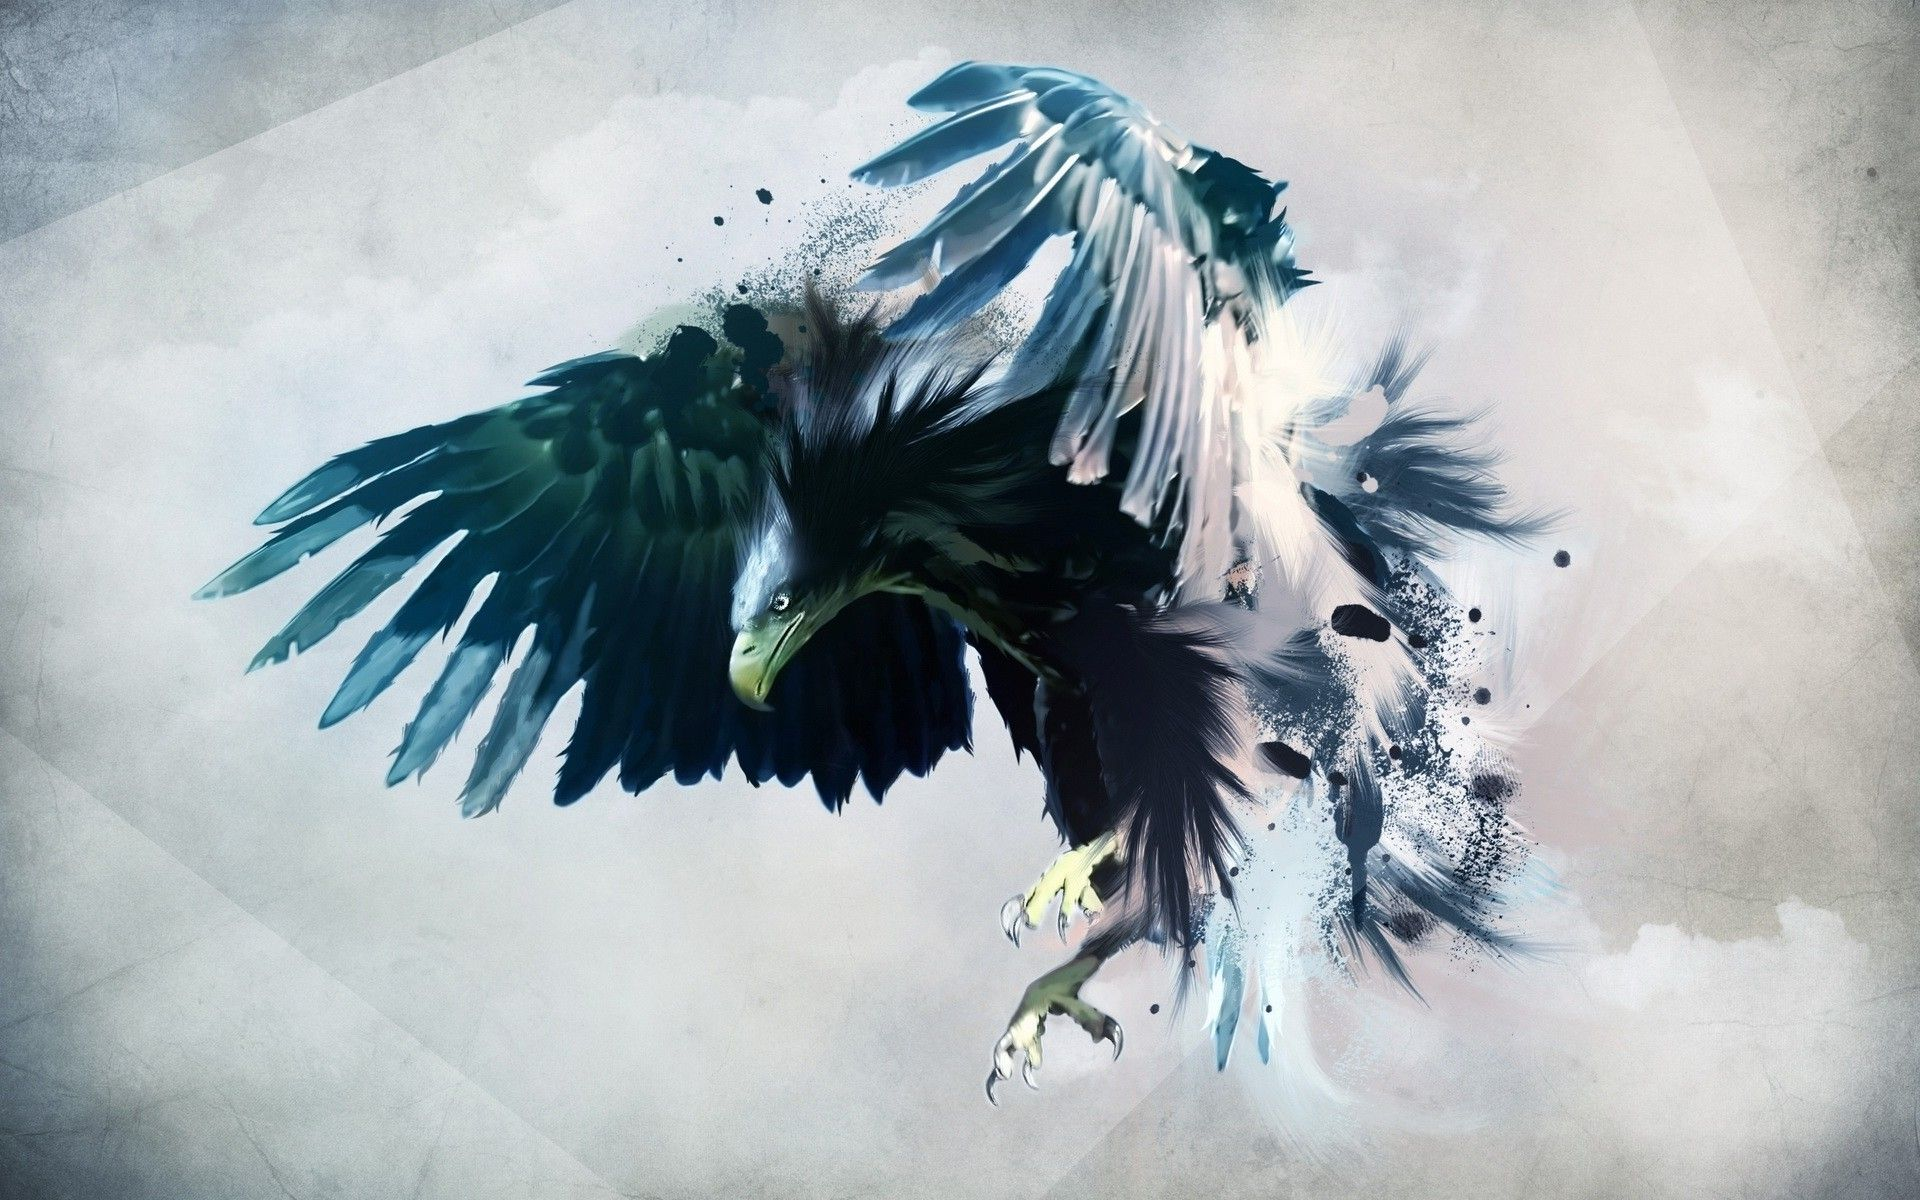 free bald eagle wallpapers wallpaper | hd wallpapers | pinterest